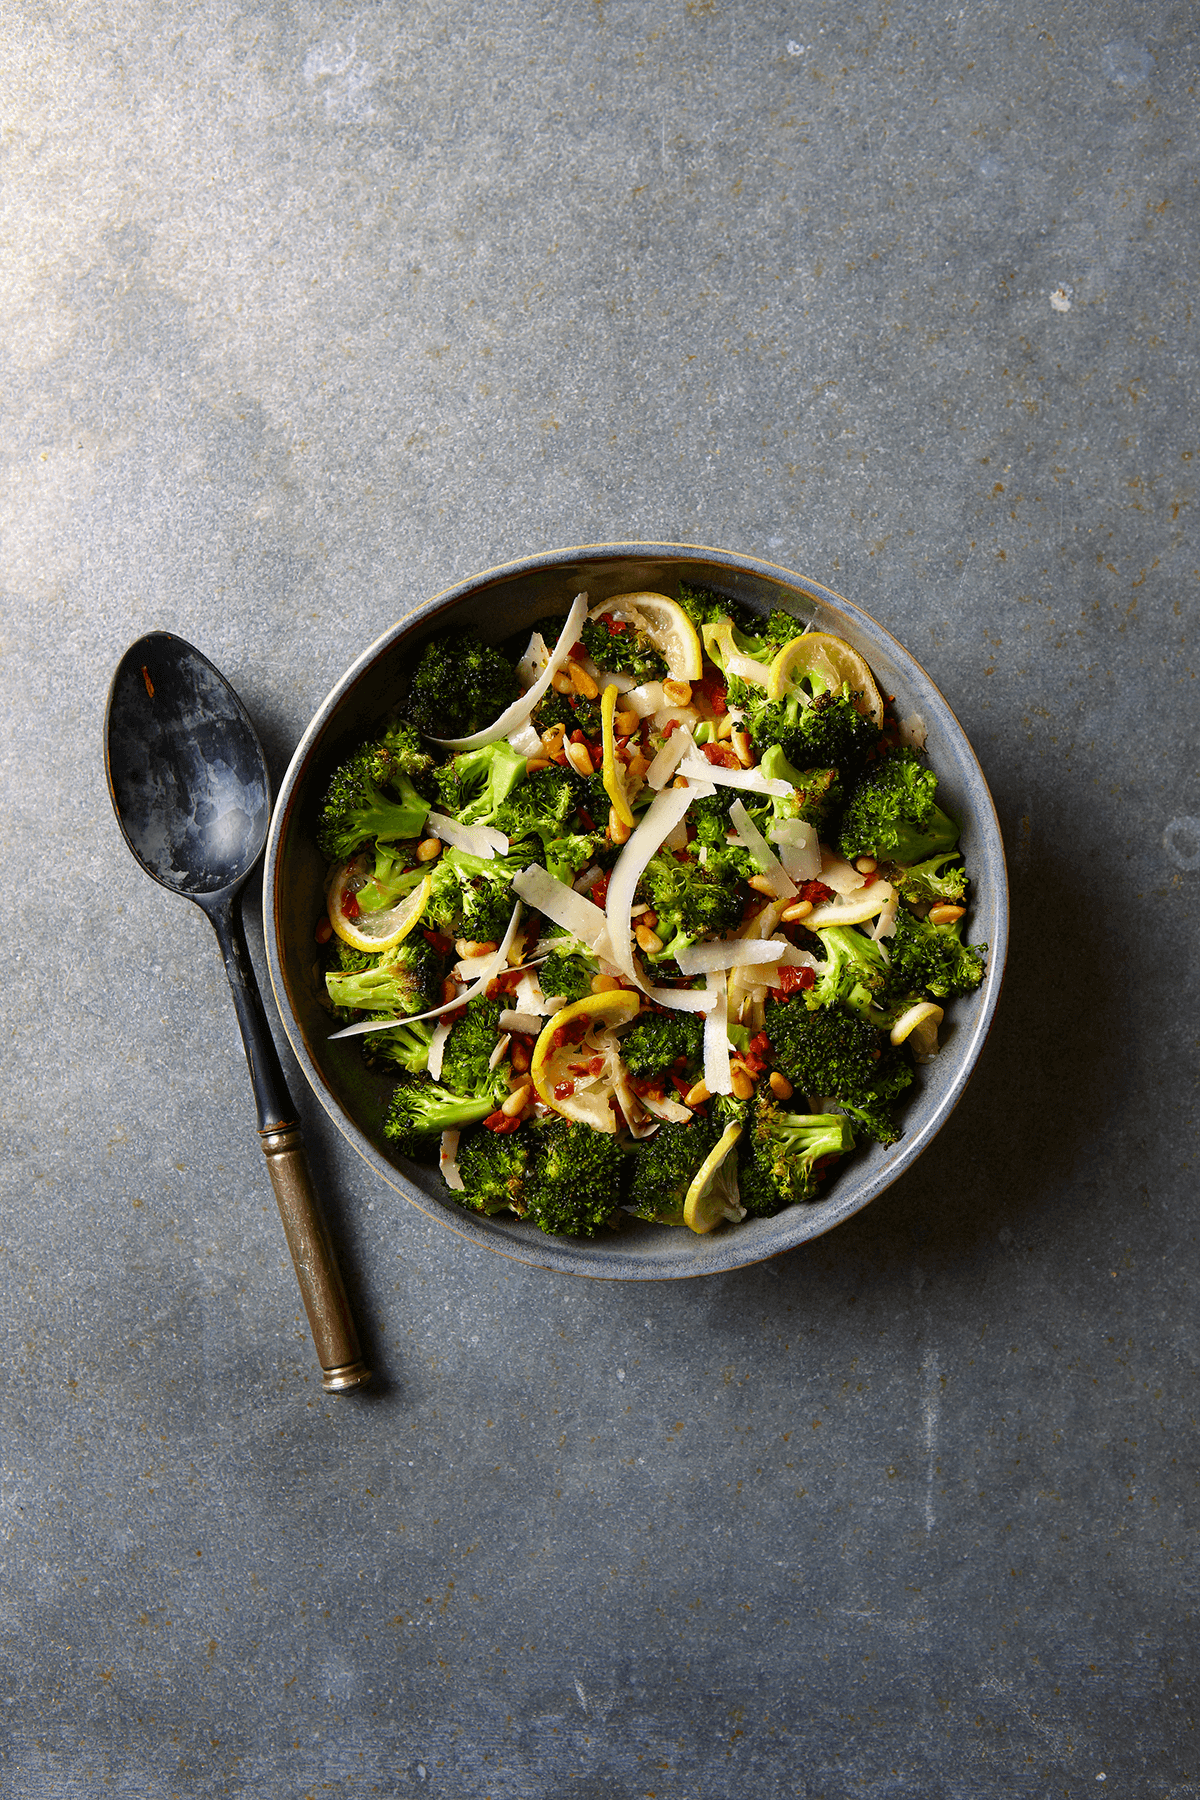 Roasted Broccoli with Sun-Dried Tomatoes